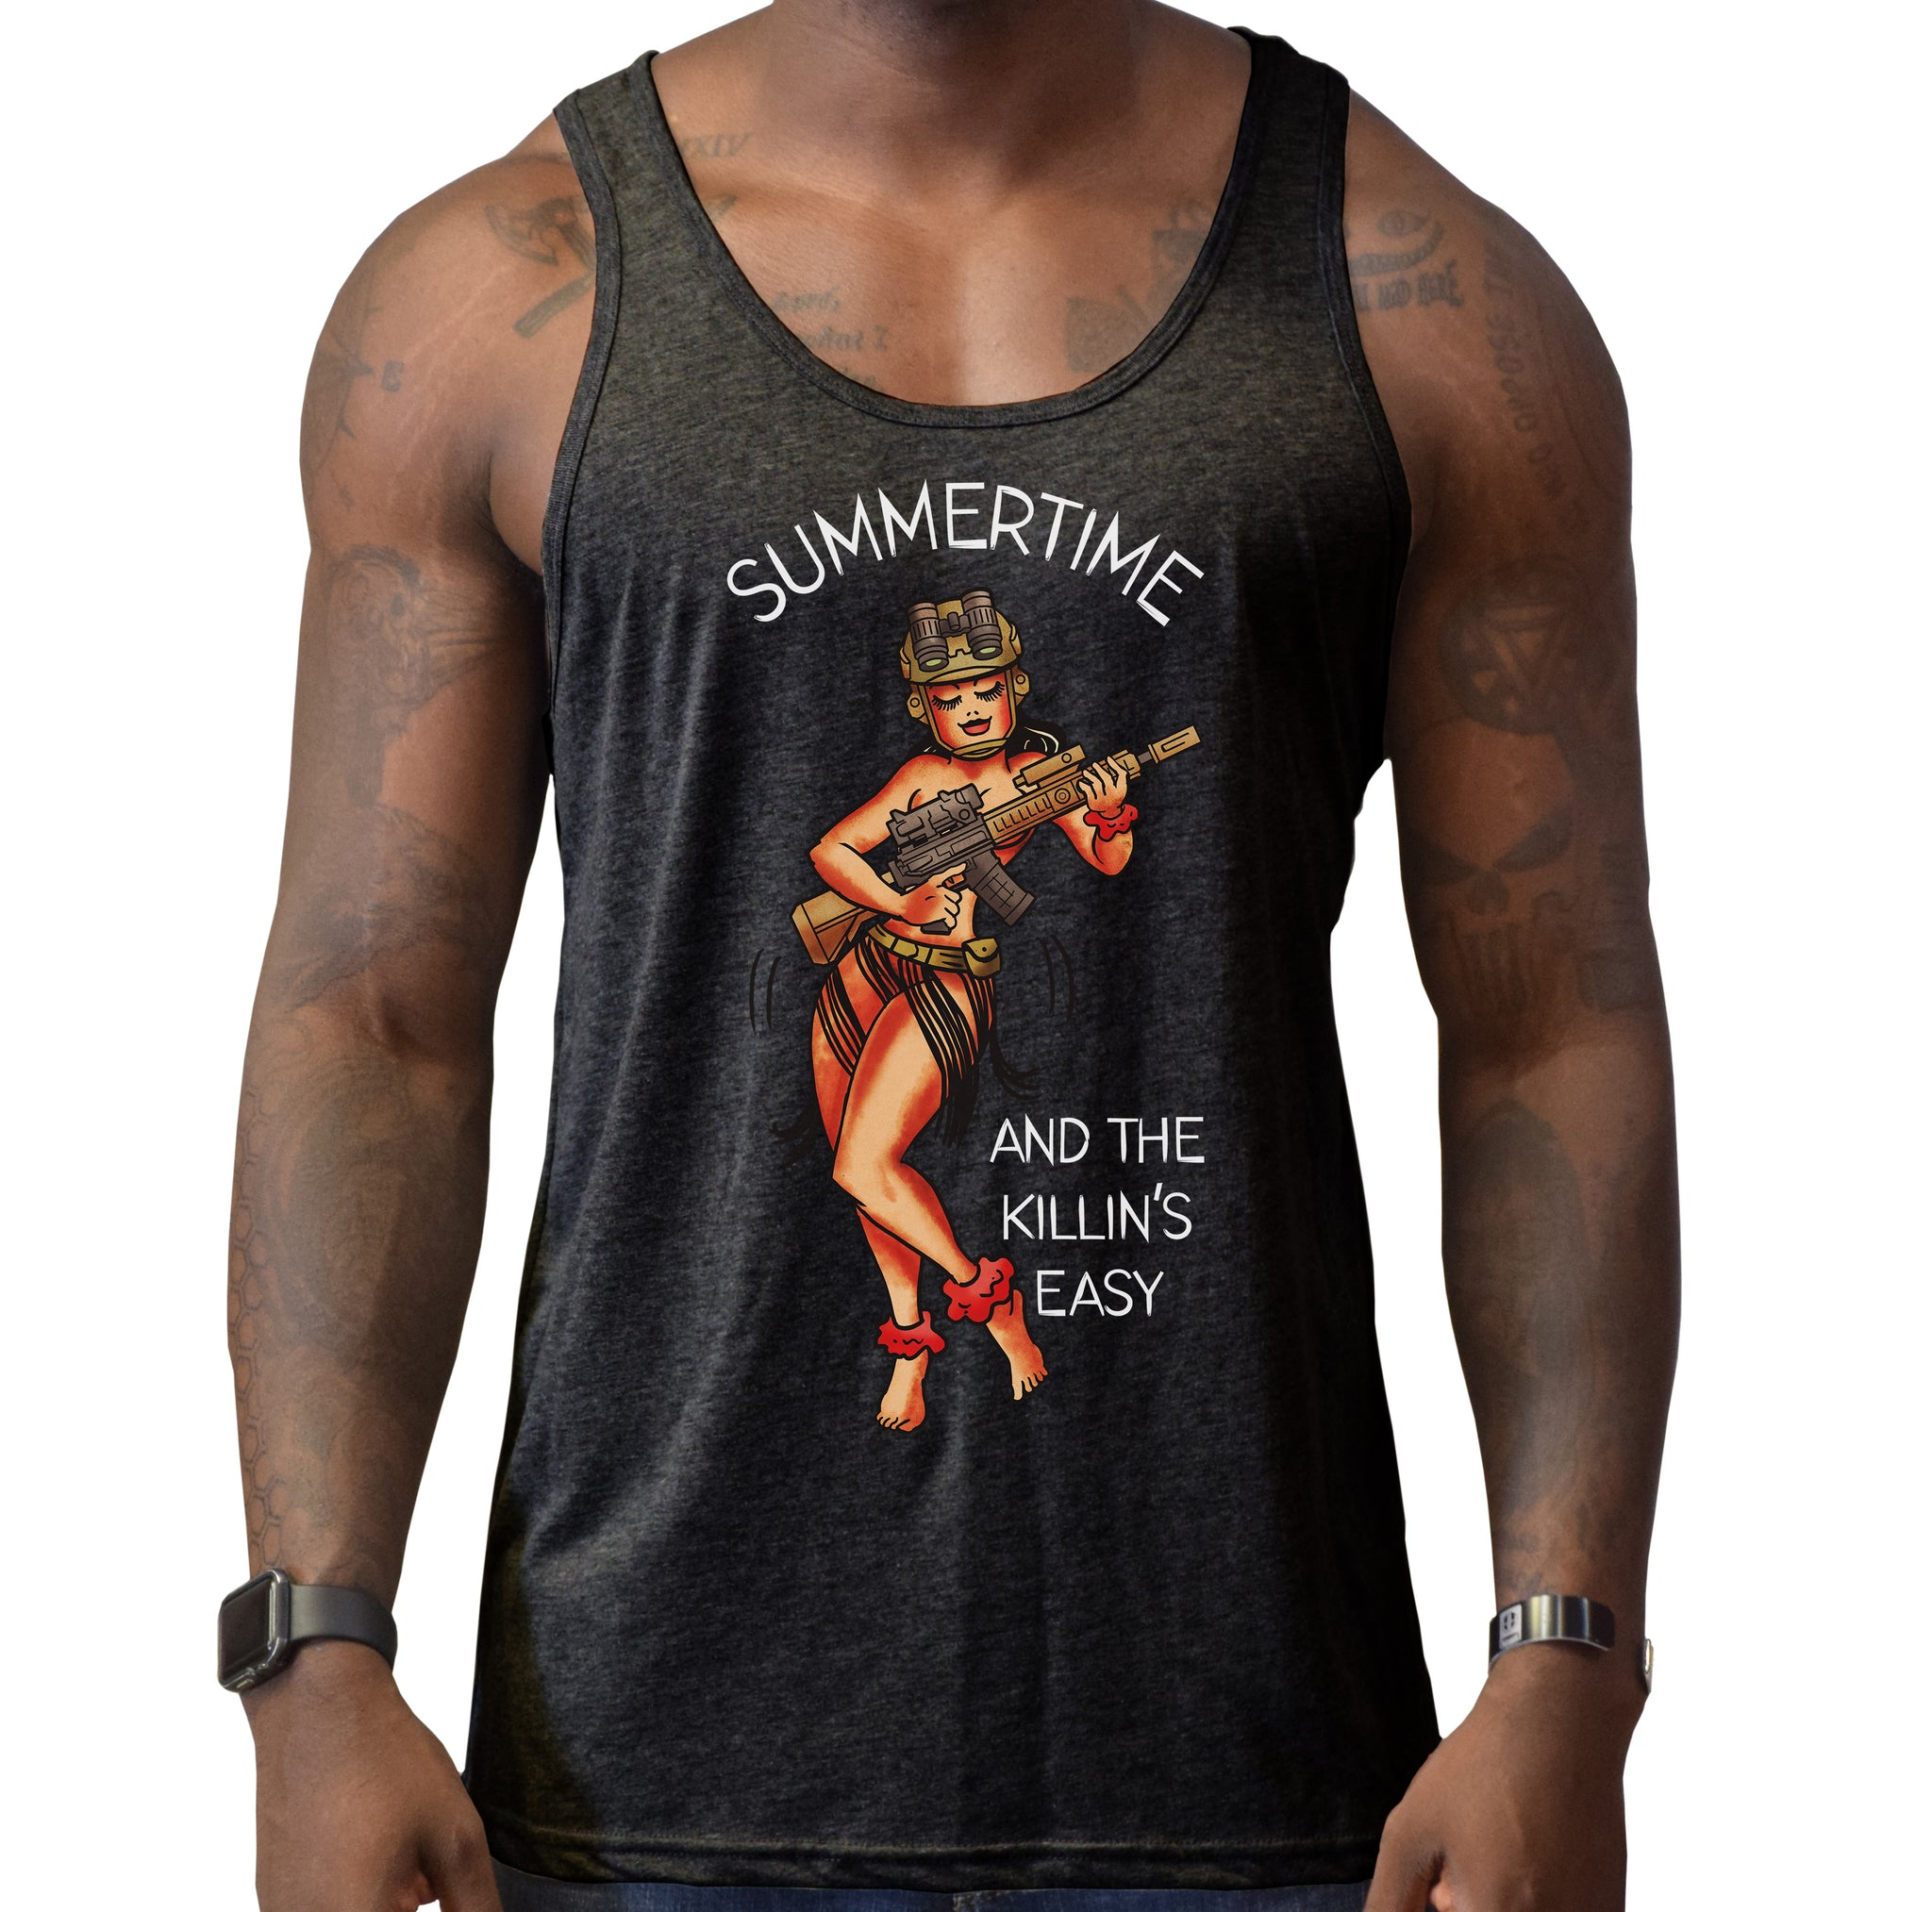 Summertime Killin' Tank